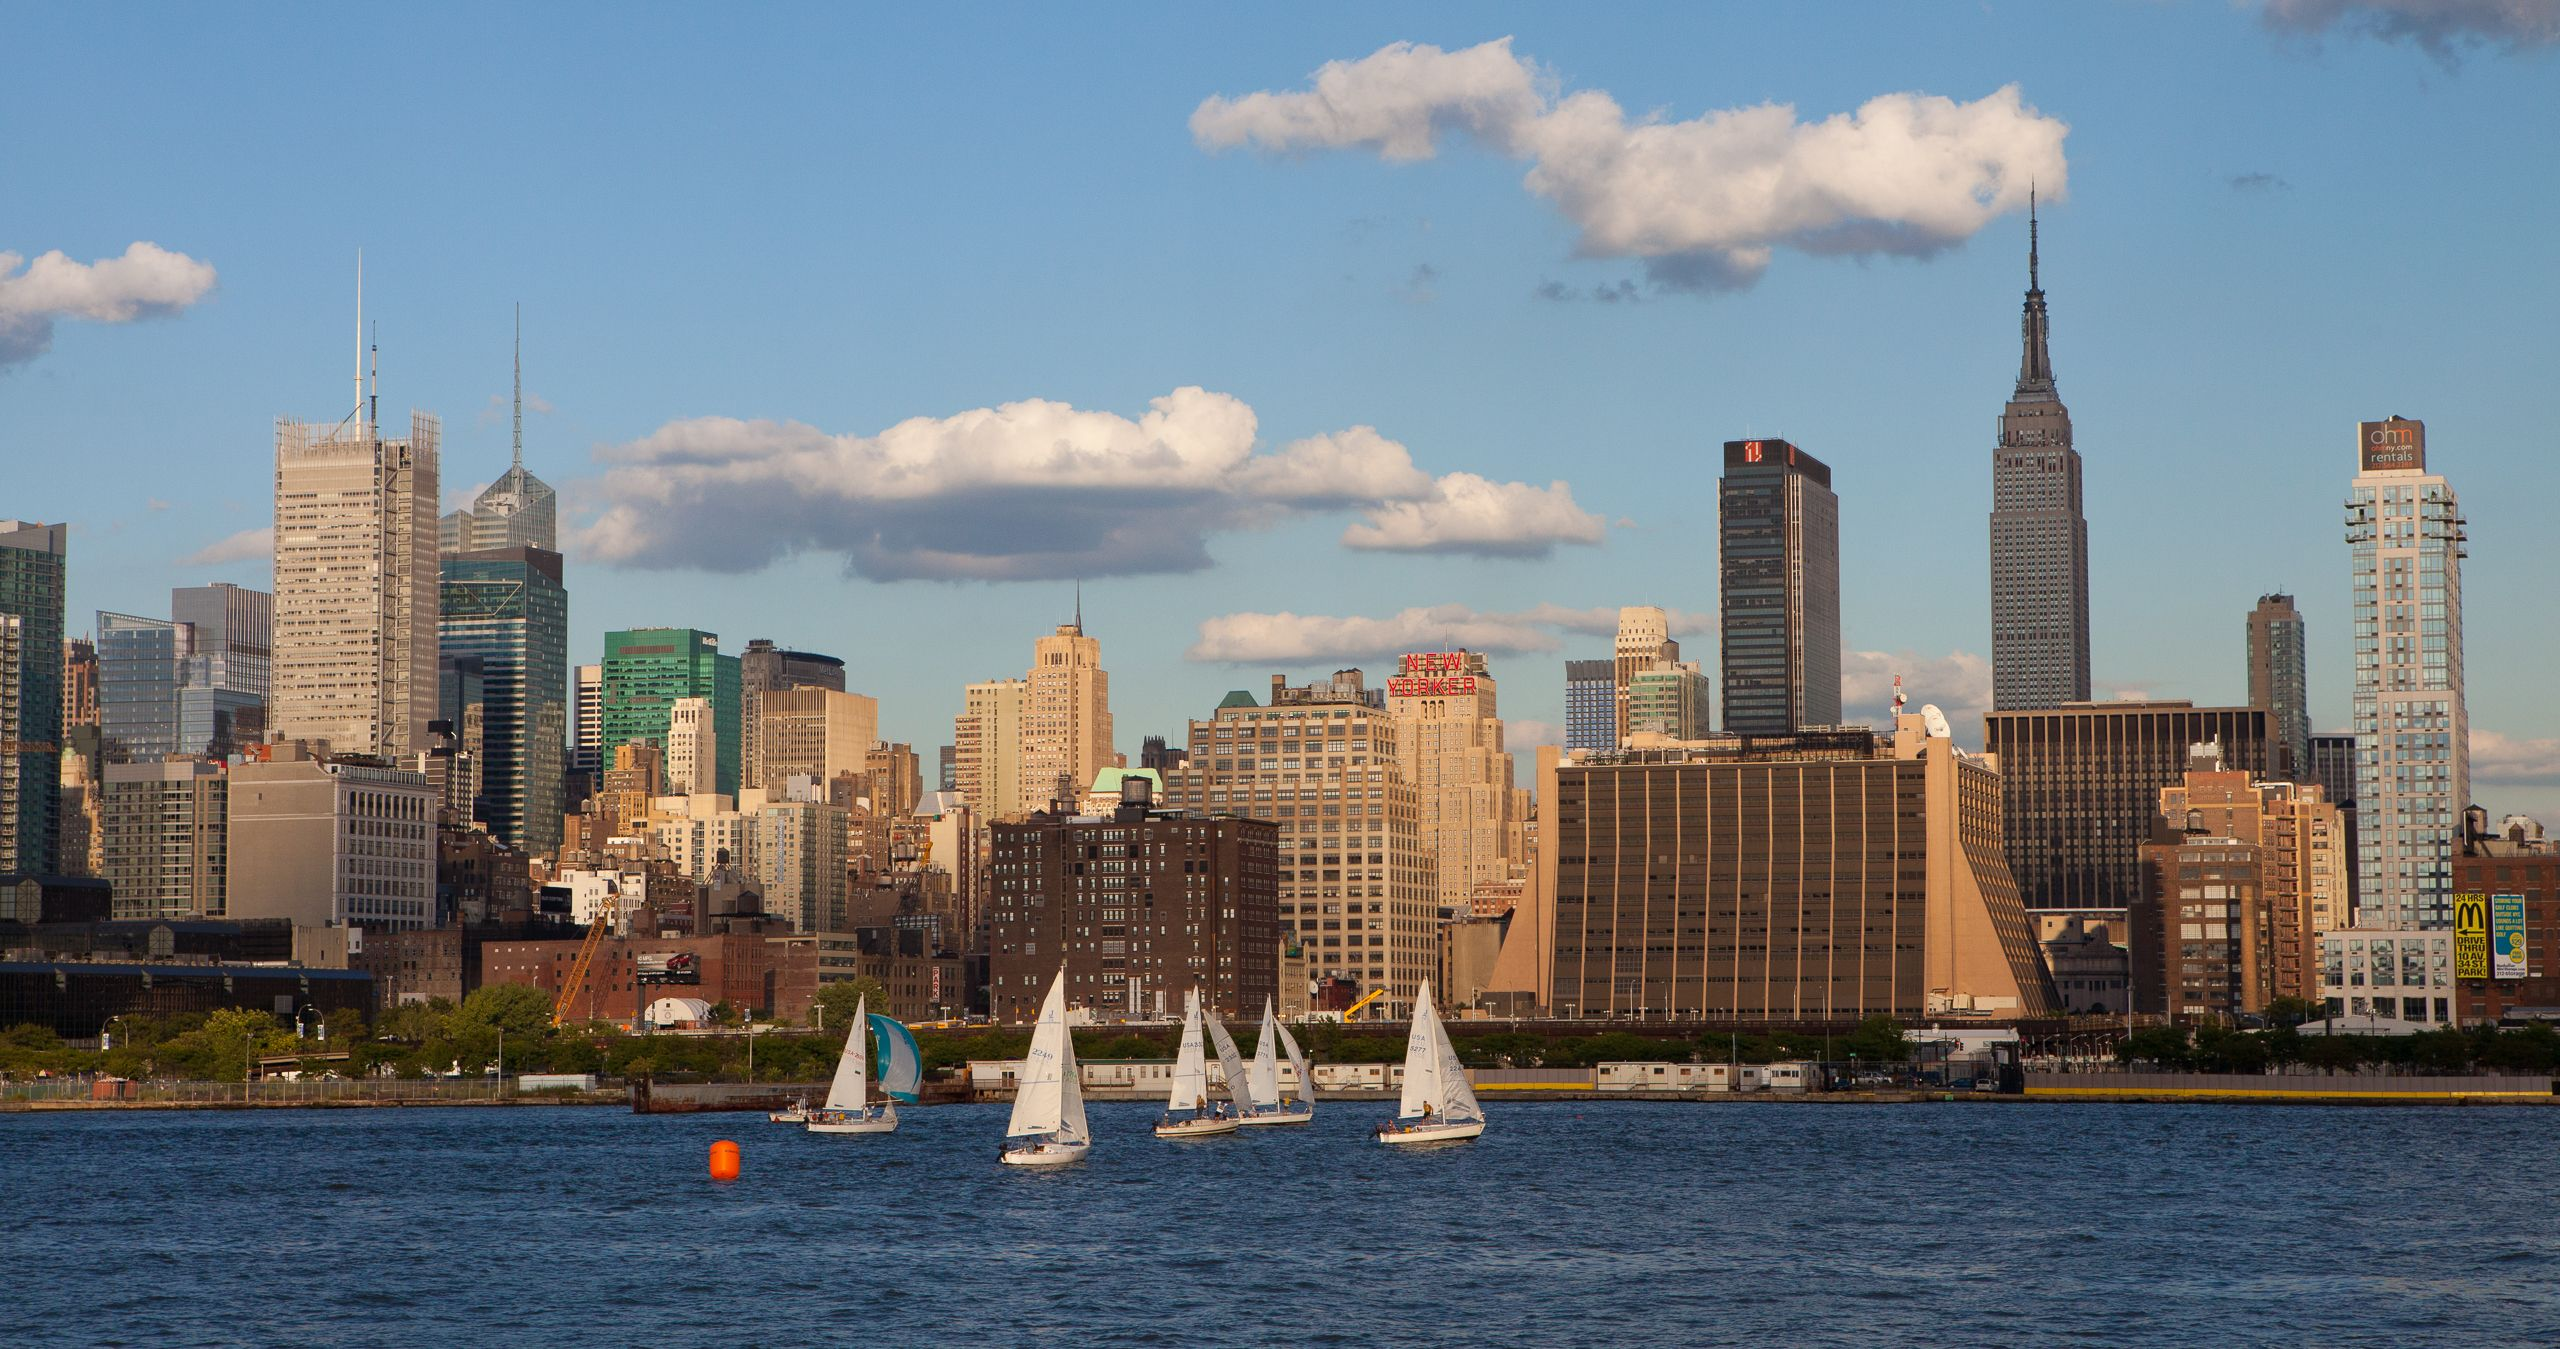 View of New York City from the Hudson River